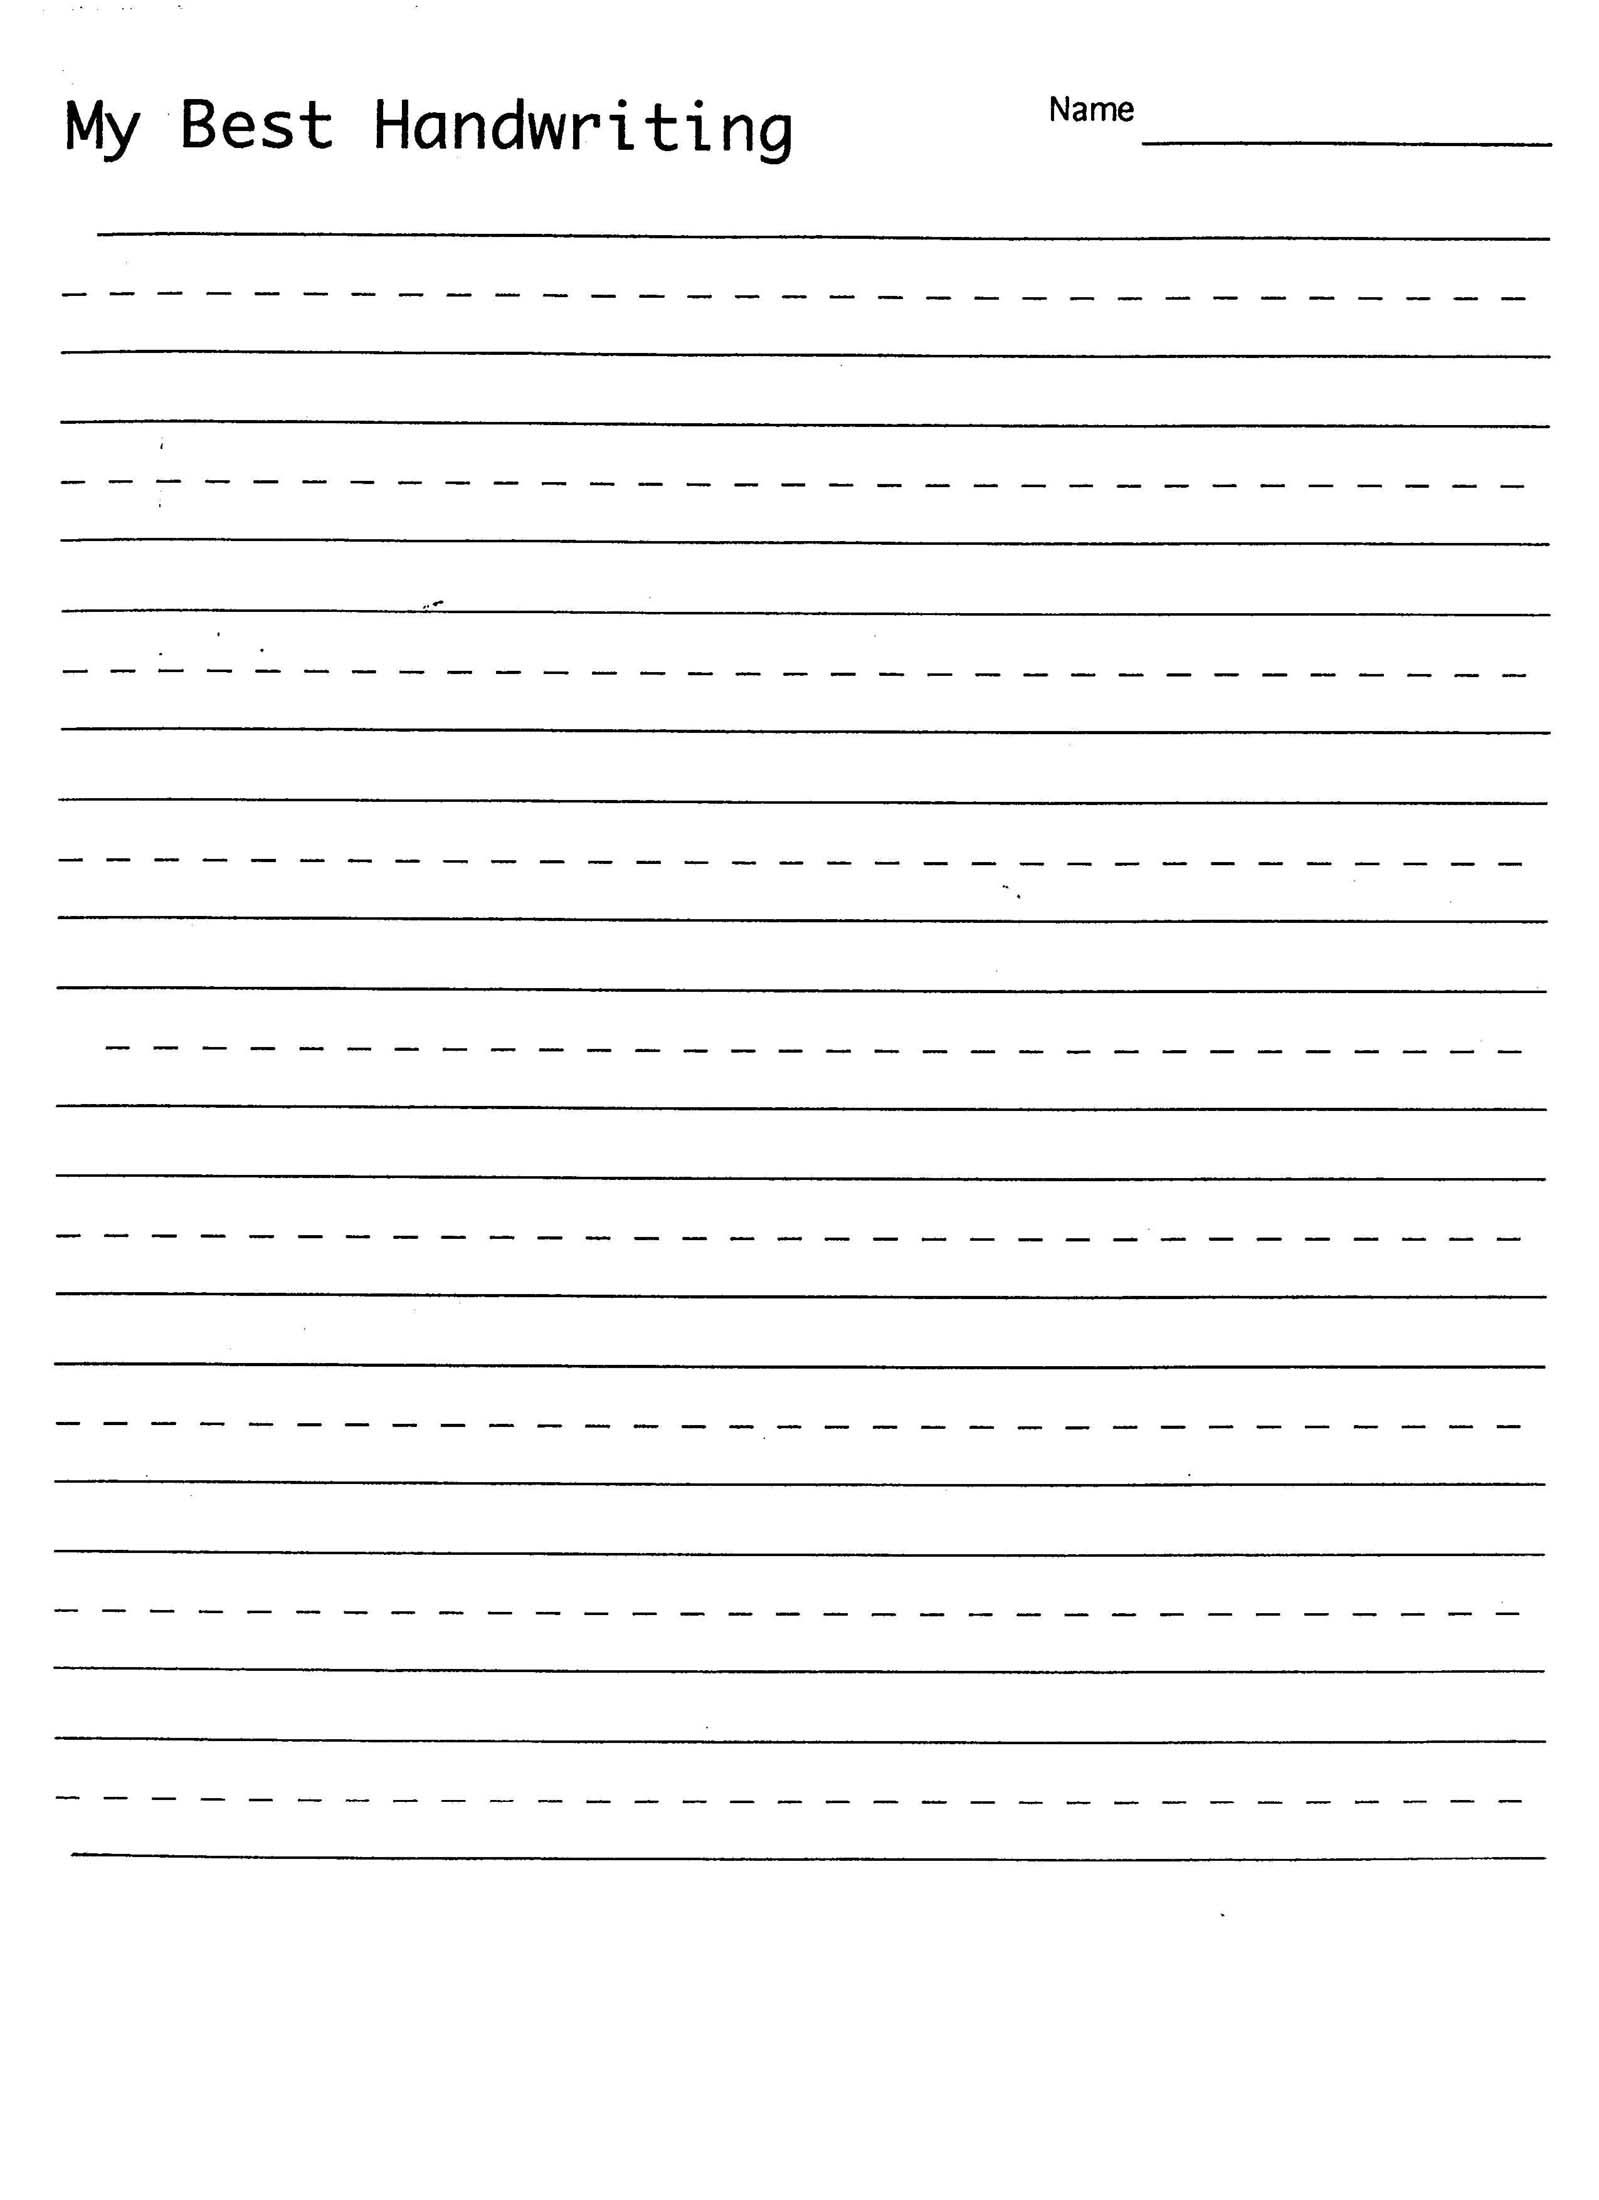 Worksheets Cursive Practice Worksheets handwriting practice sheet child education pinterest 6 best images of free printable blank writing worksheet sheet